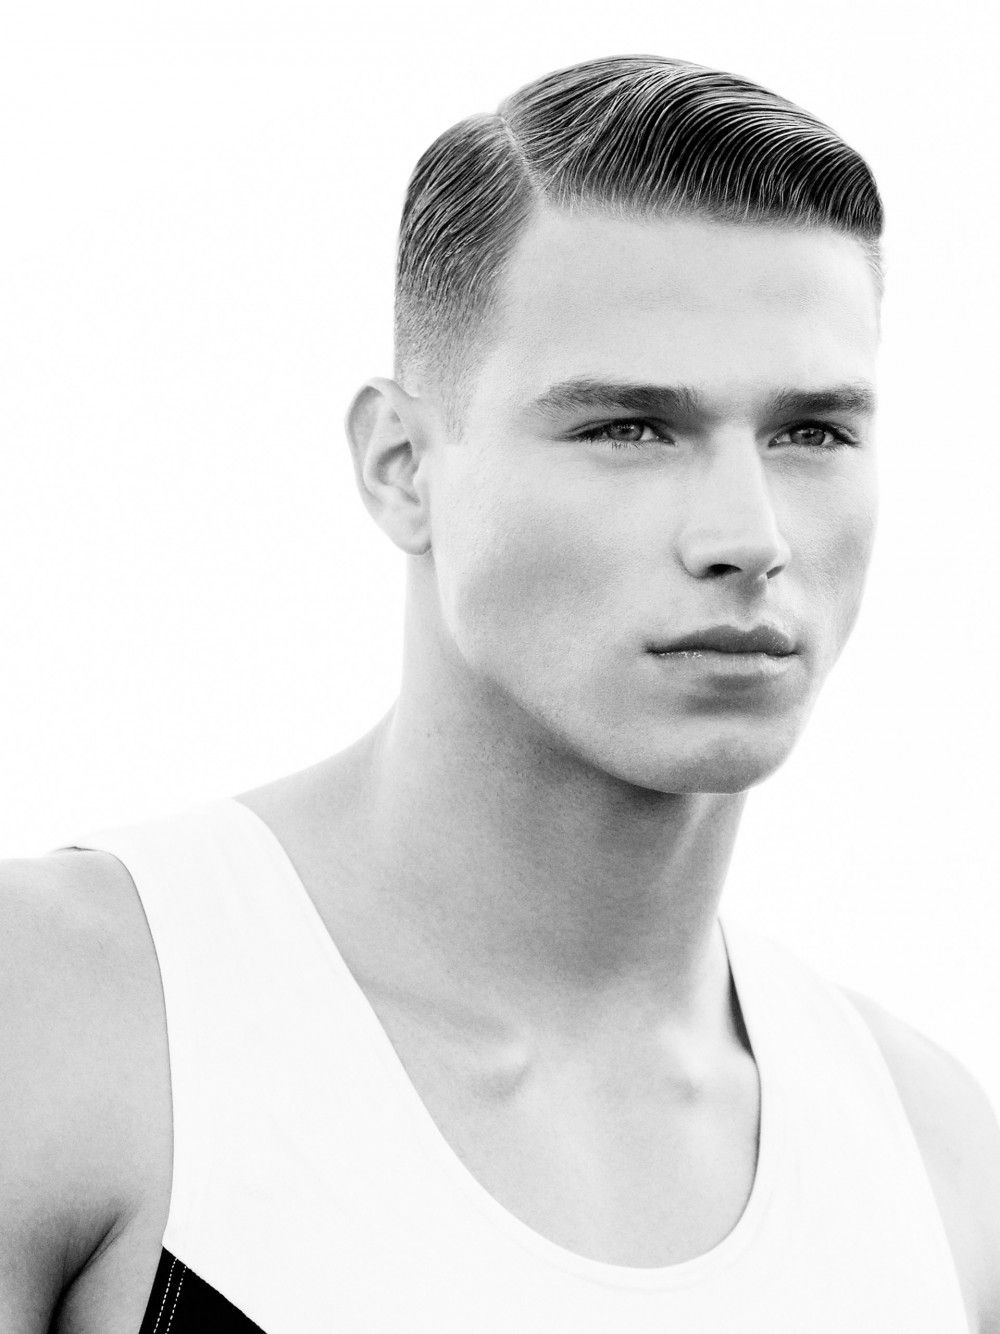 The Gentleman Haircut Image collections - Haircut Ideas for Women